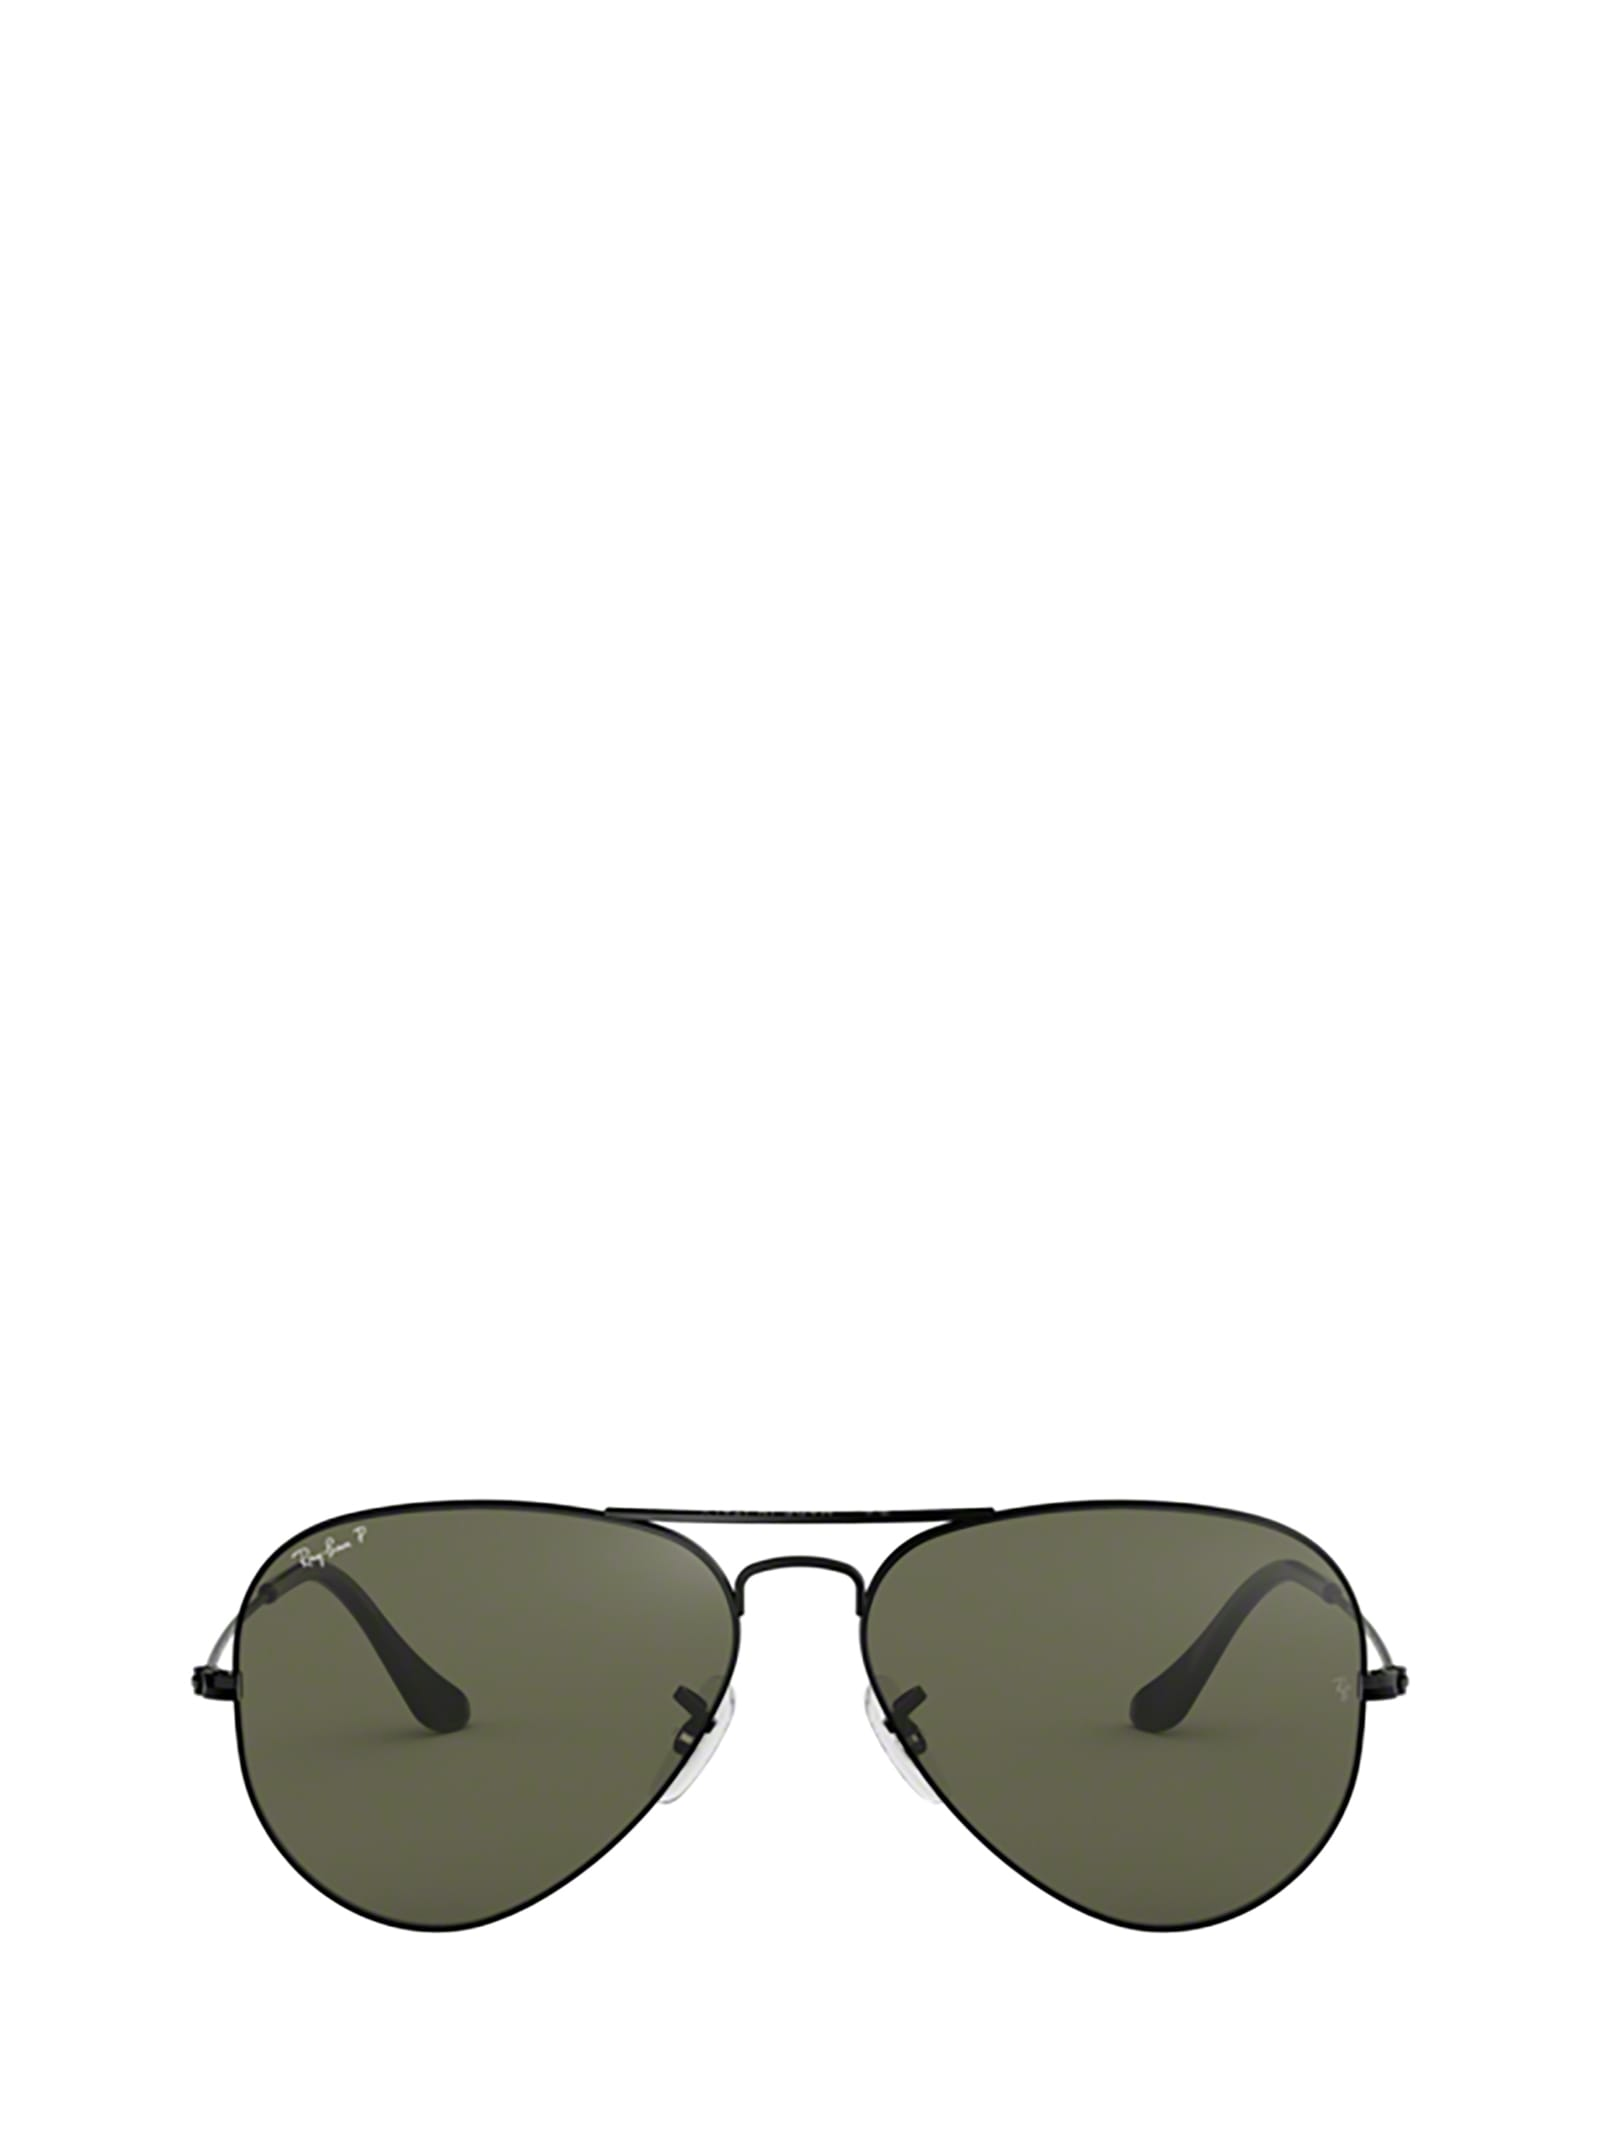 Ray-Ban Ray-ban Rb3025 Black Sunglasses